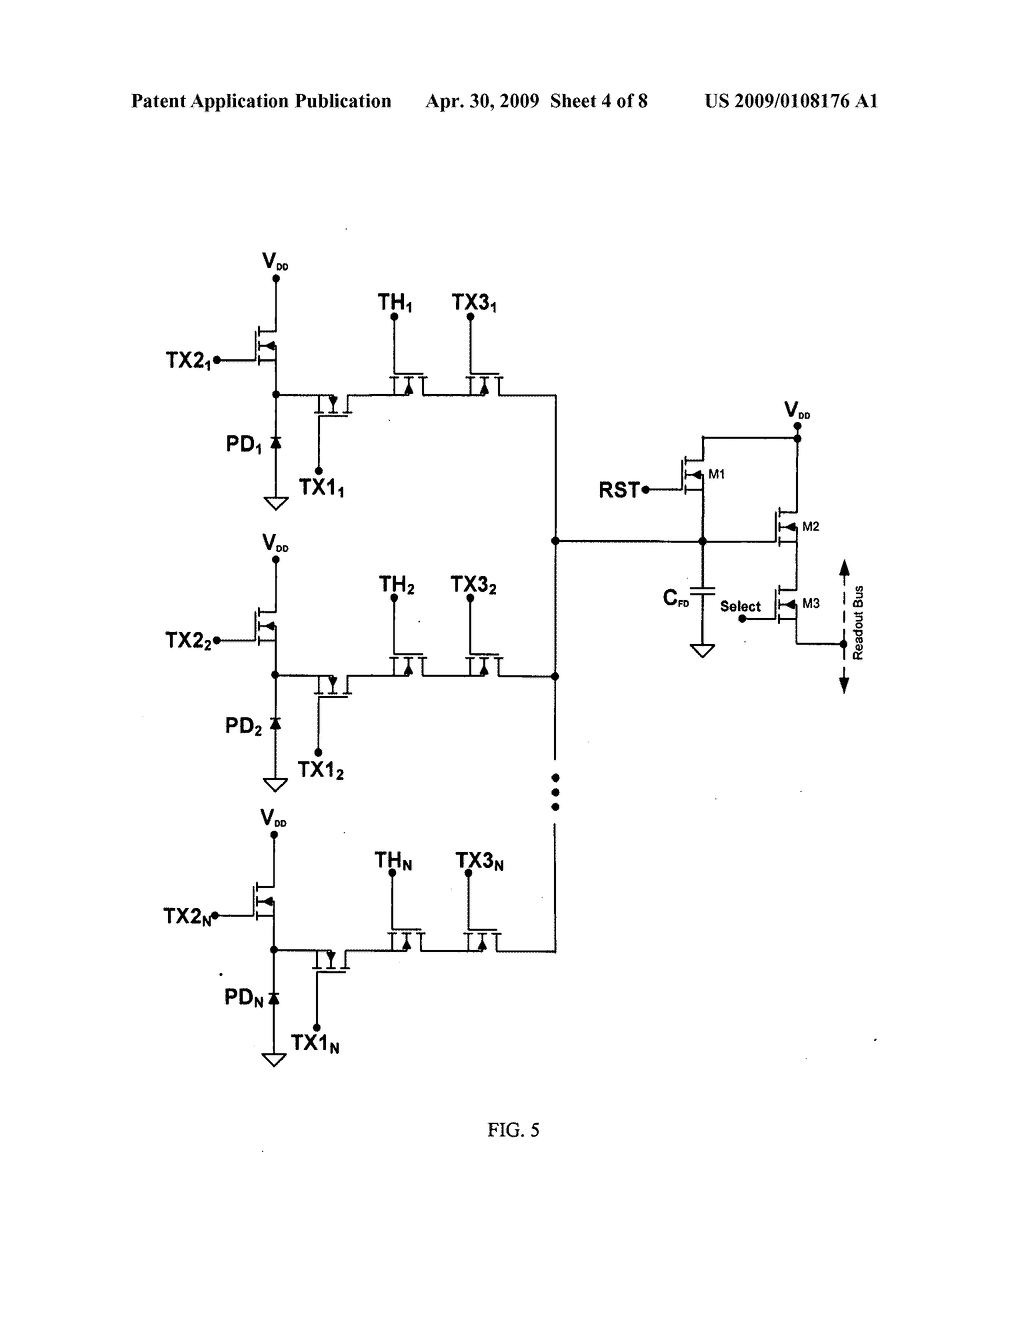 Global Shutter Pixel Circuit With Transistor Sharing For Cmos Image In Sensors Diagram Schematic And 05